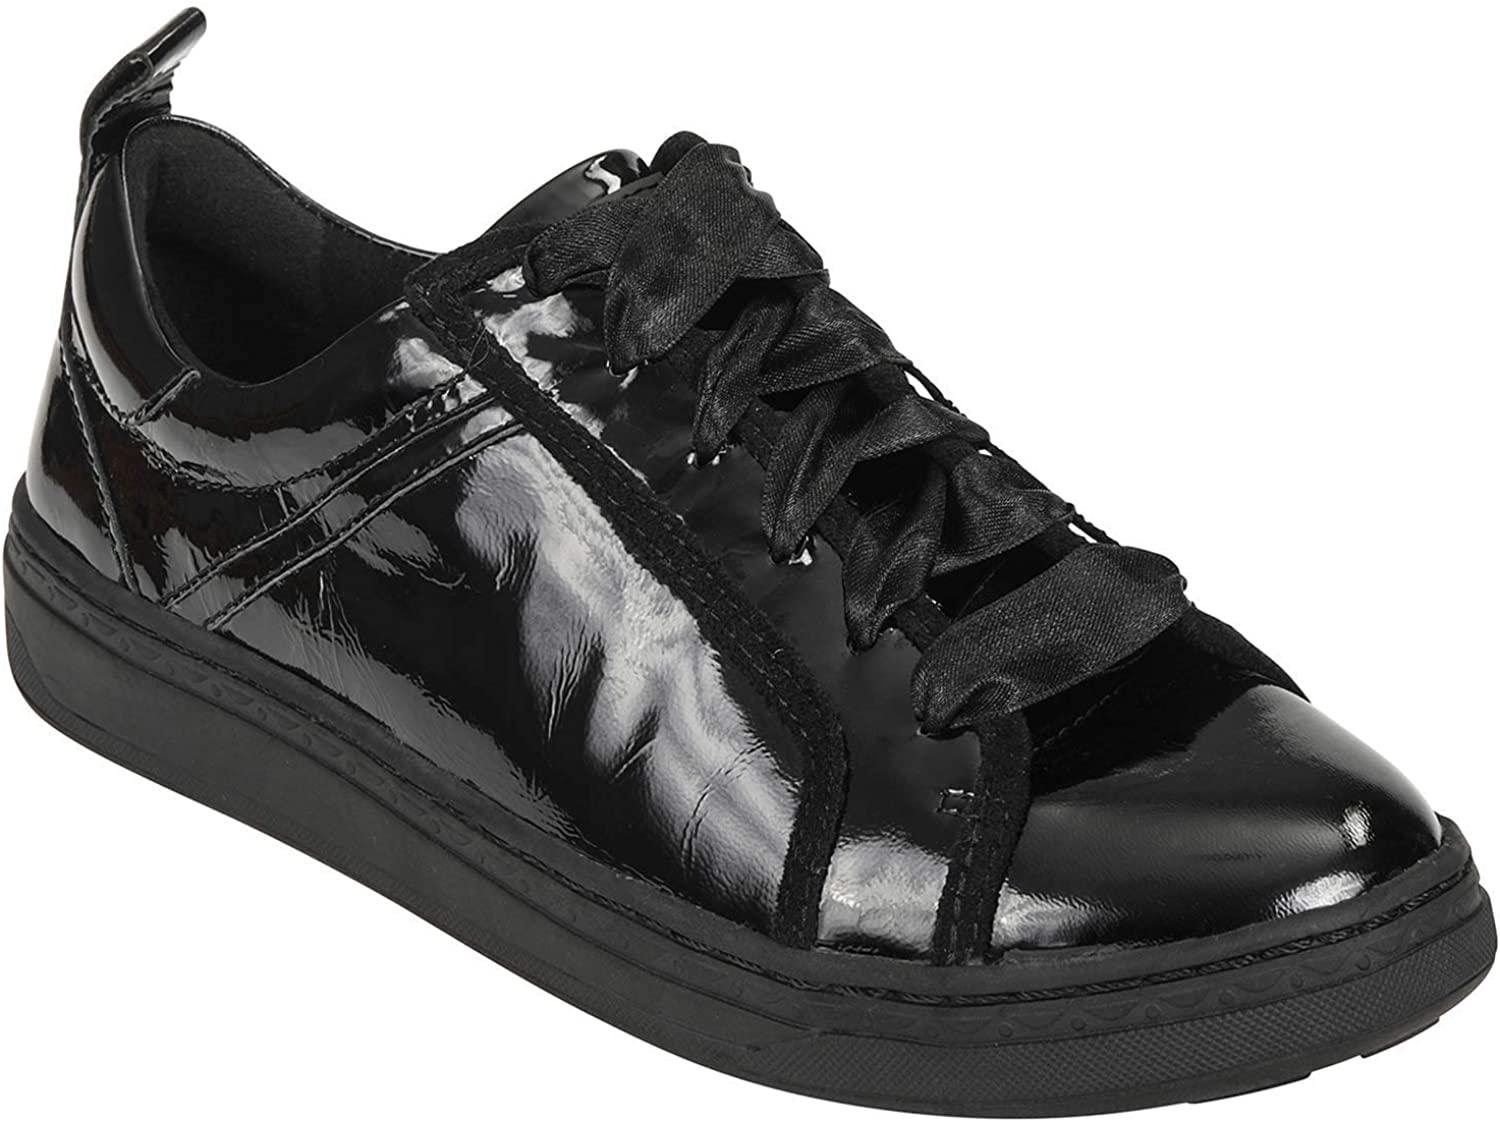 Earth Womens Zinnia Sneaker Low Top Lace Up Fashion Sneakers